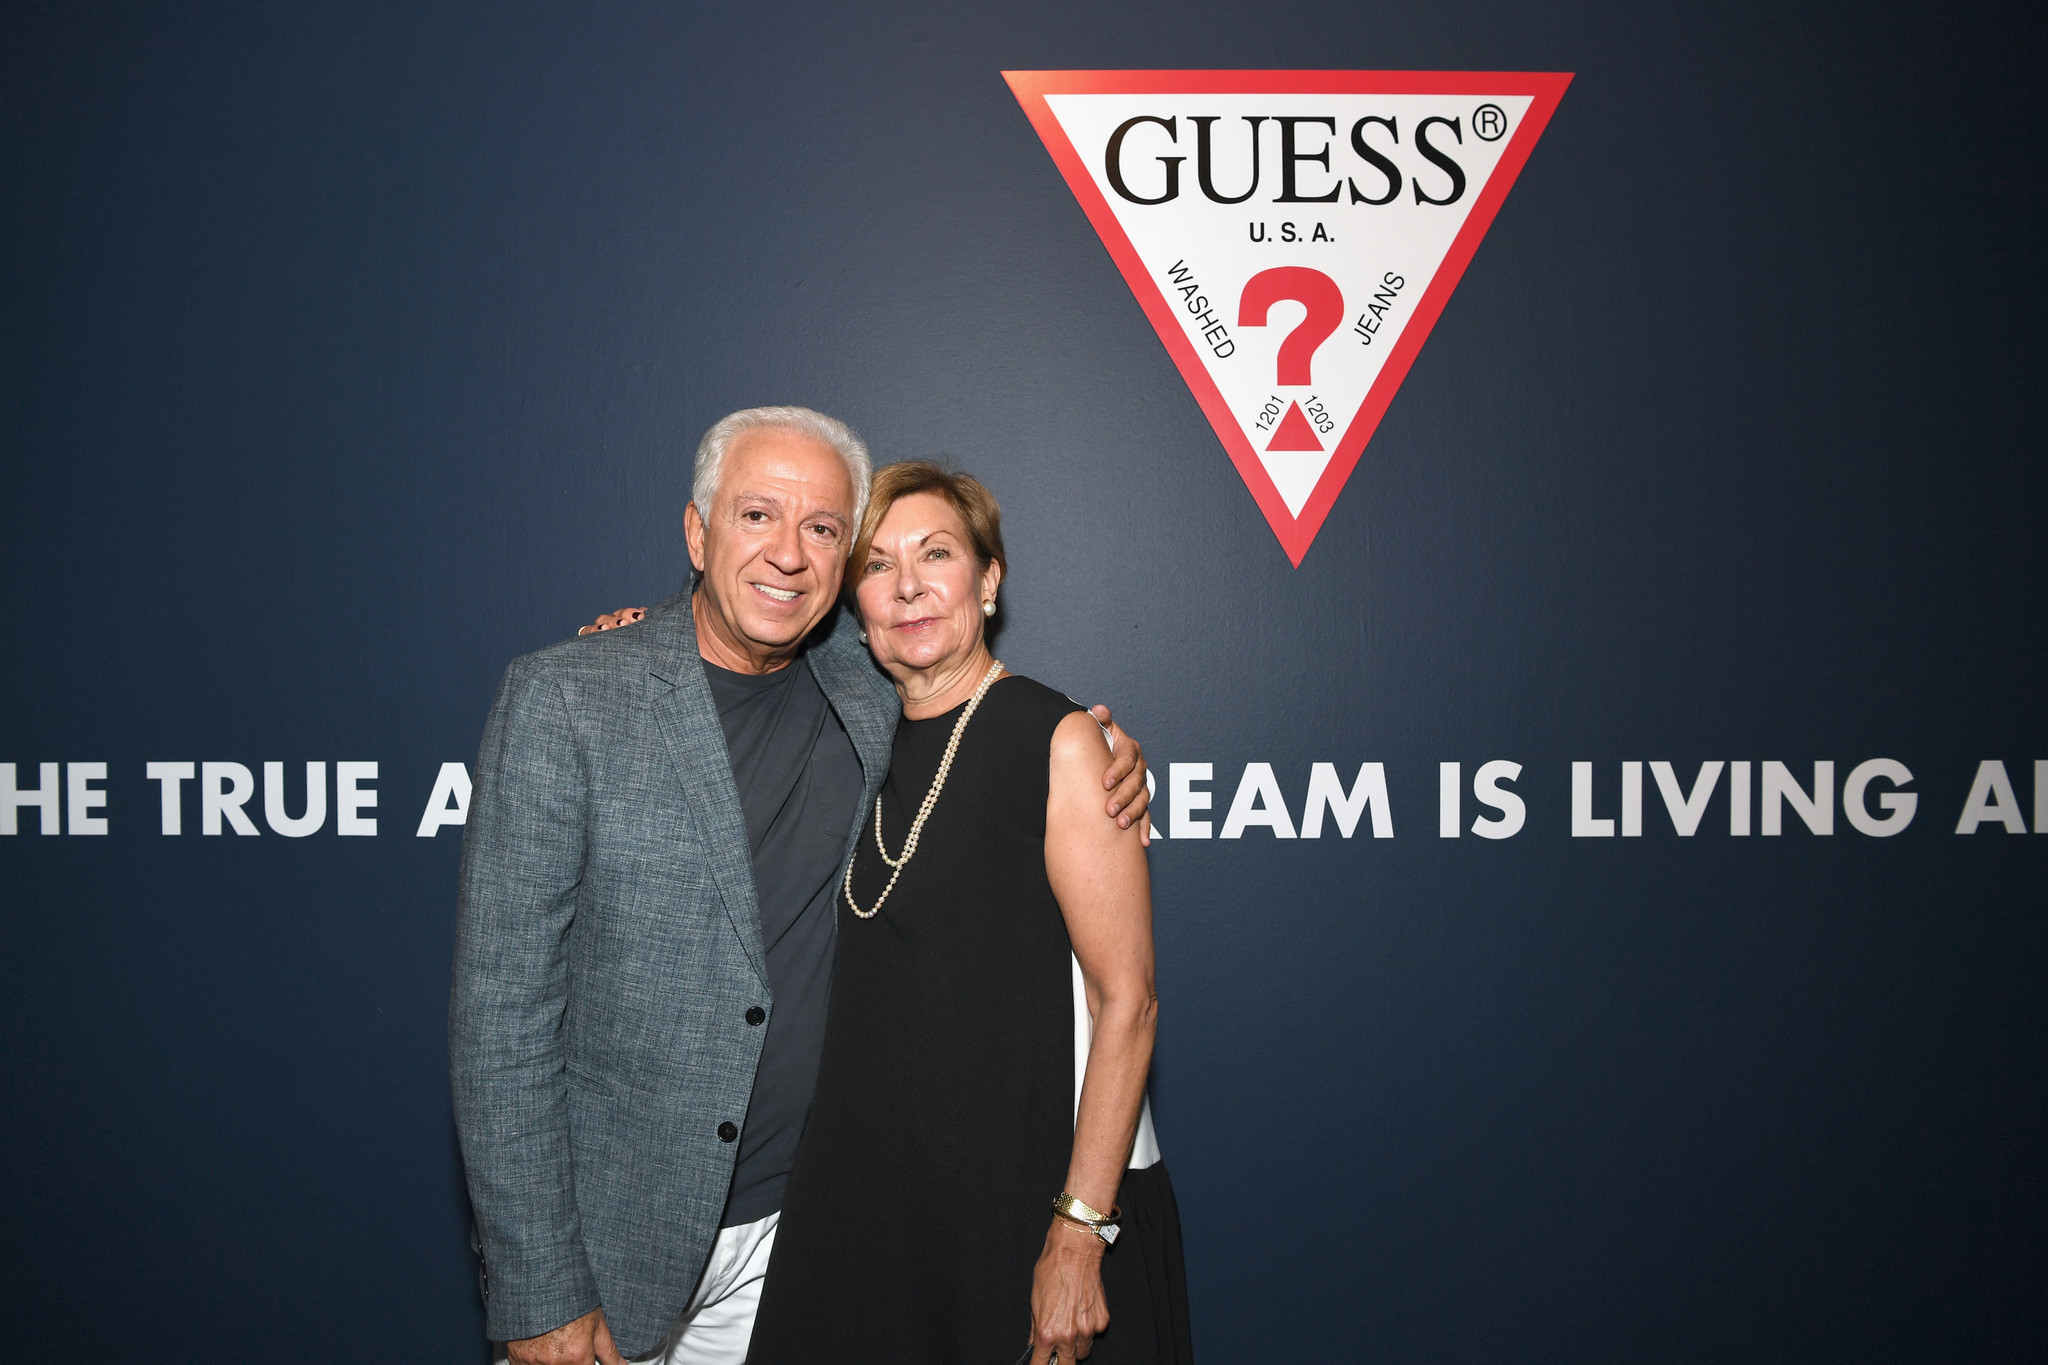 an introduction to the guess incorporated founded by the marciano brothers Guess is an american upscale retailer and a brand of clothing and other fashion  accessories  the brand is owned by the brothers maurice and paul marciano.